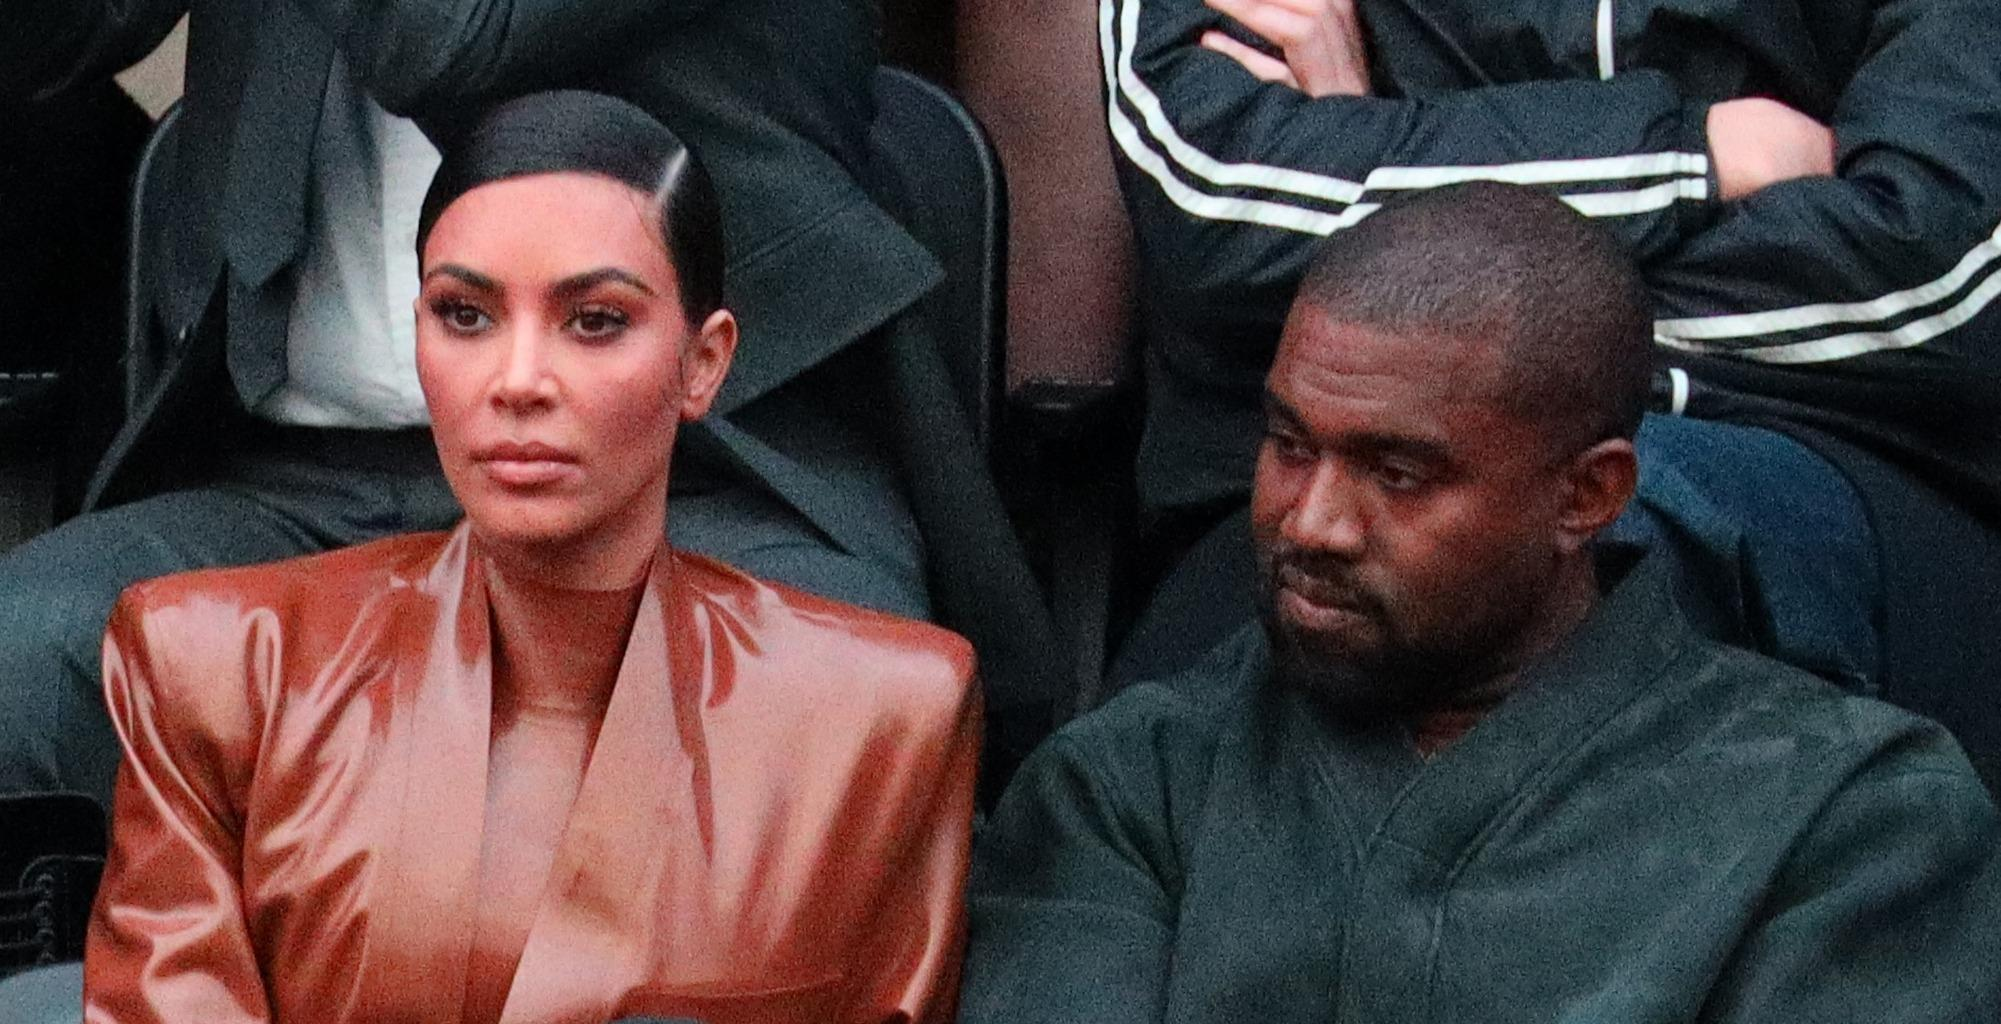 KUWTK: Kim Kardashian In Hot Water After Showing Support To Kanye West's Plans To Run For President